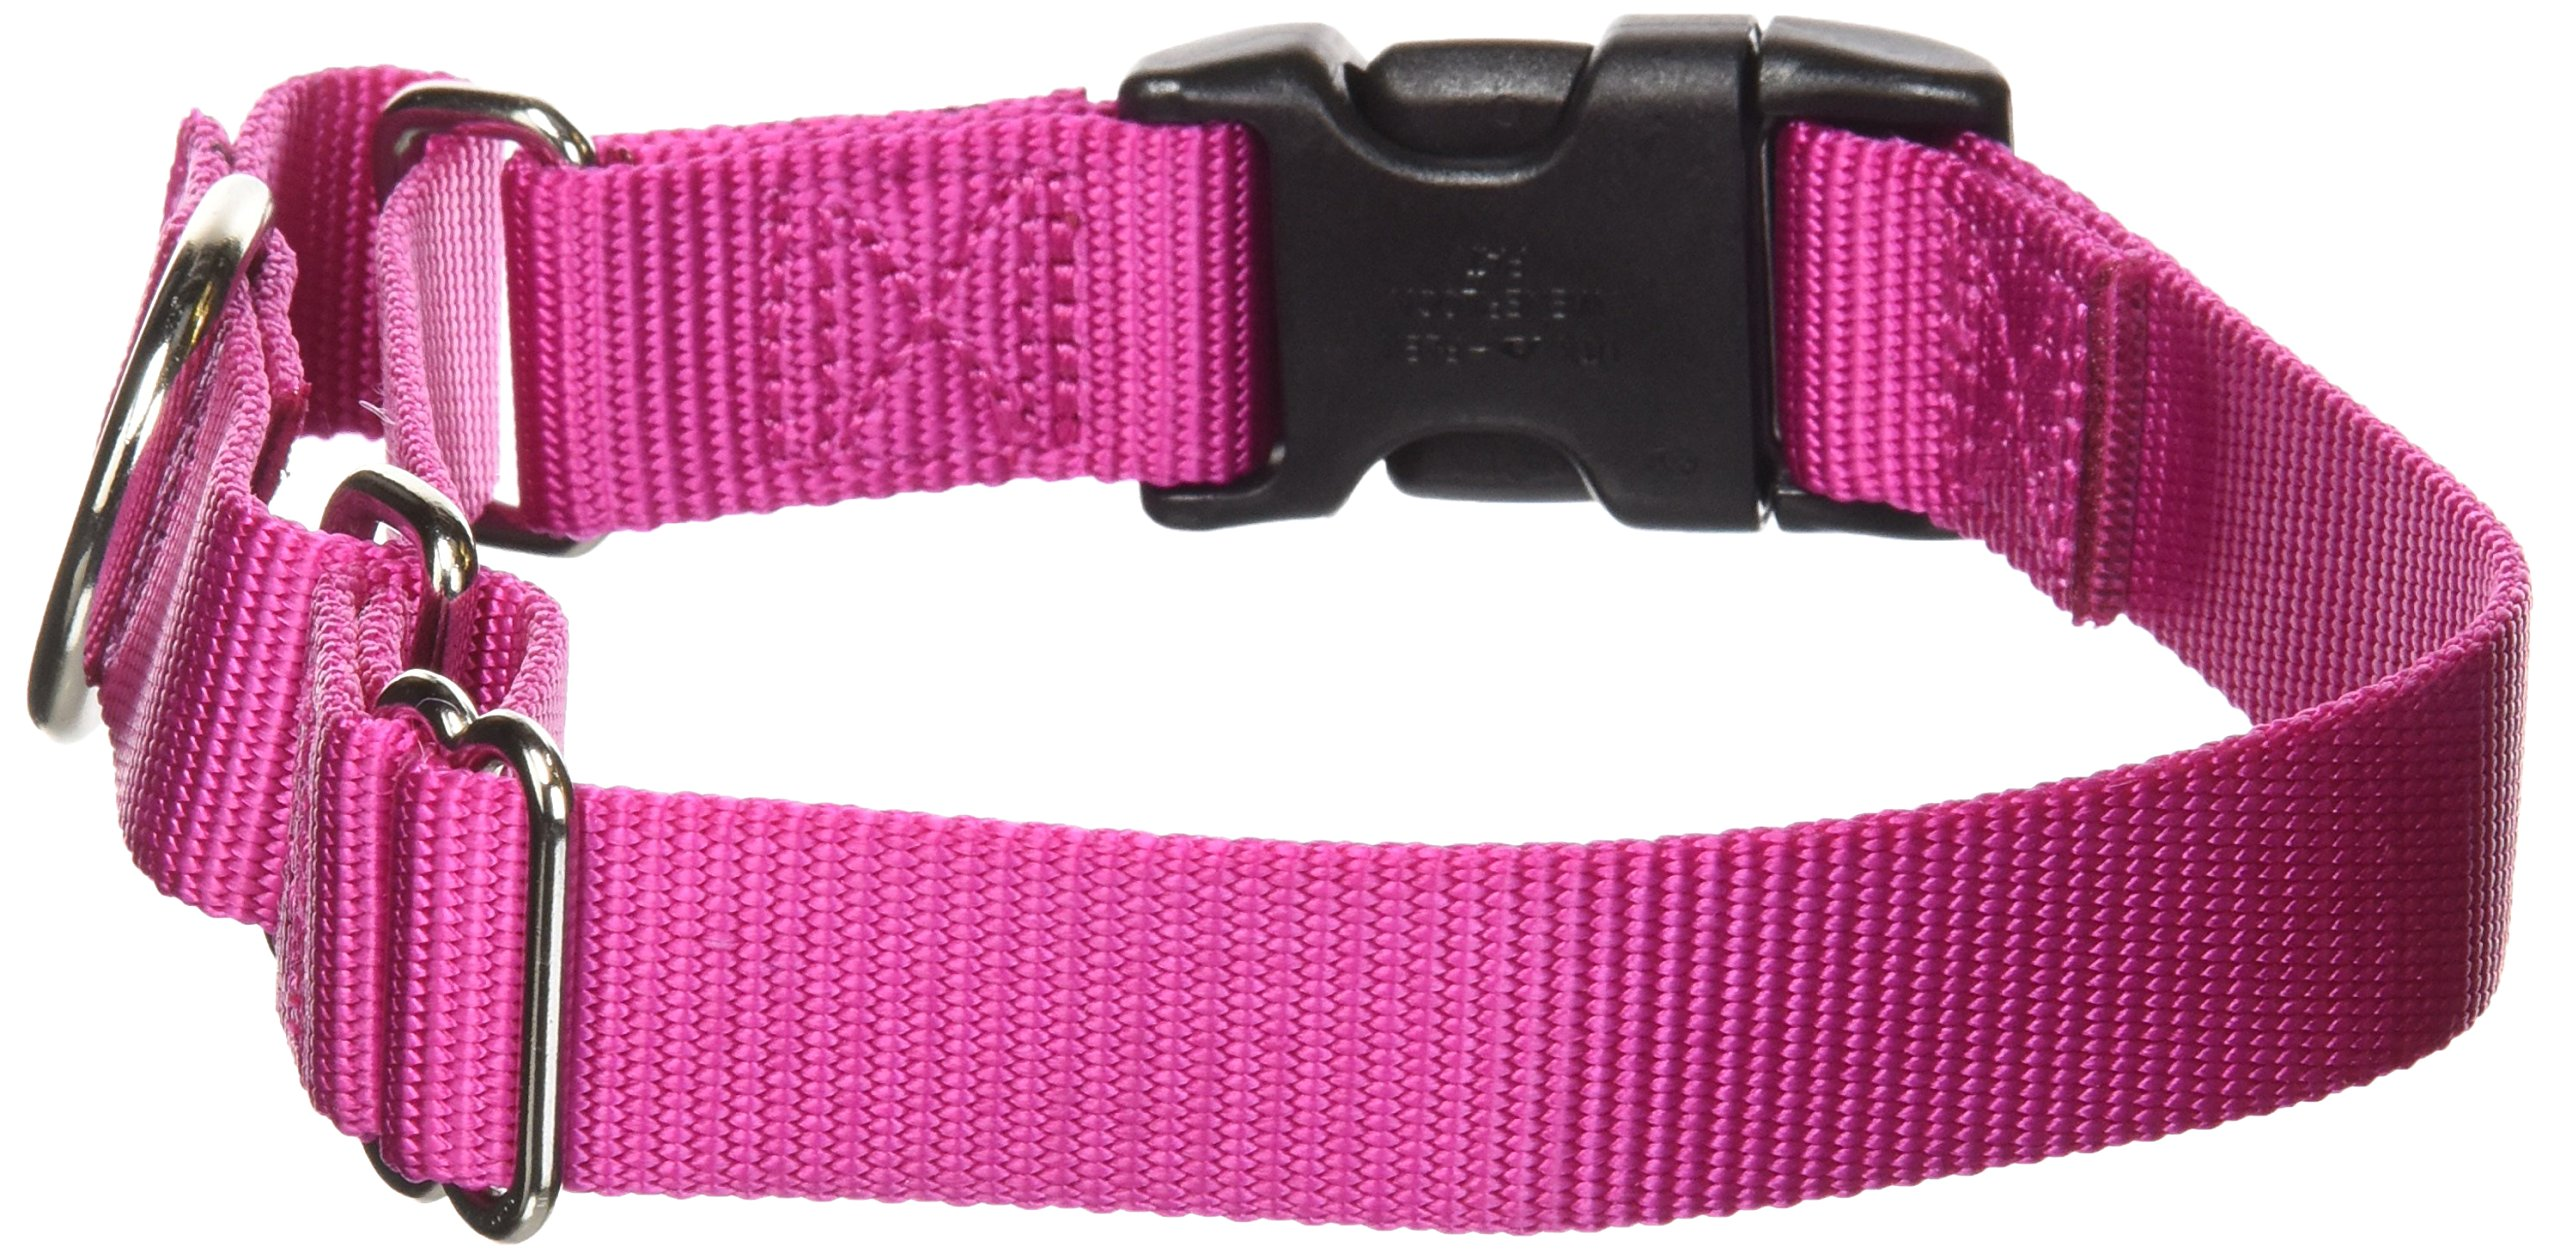 PetSafe Martingale Collar with Quick Snap Buckle, 1'' Medium, Raspberry